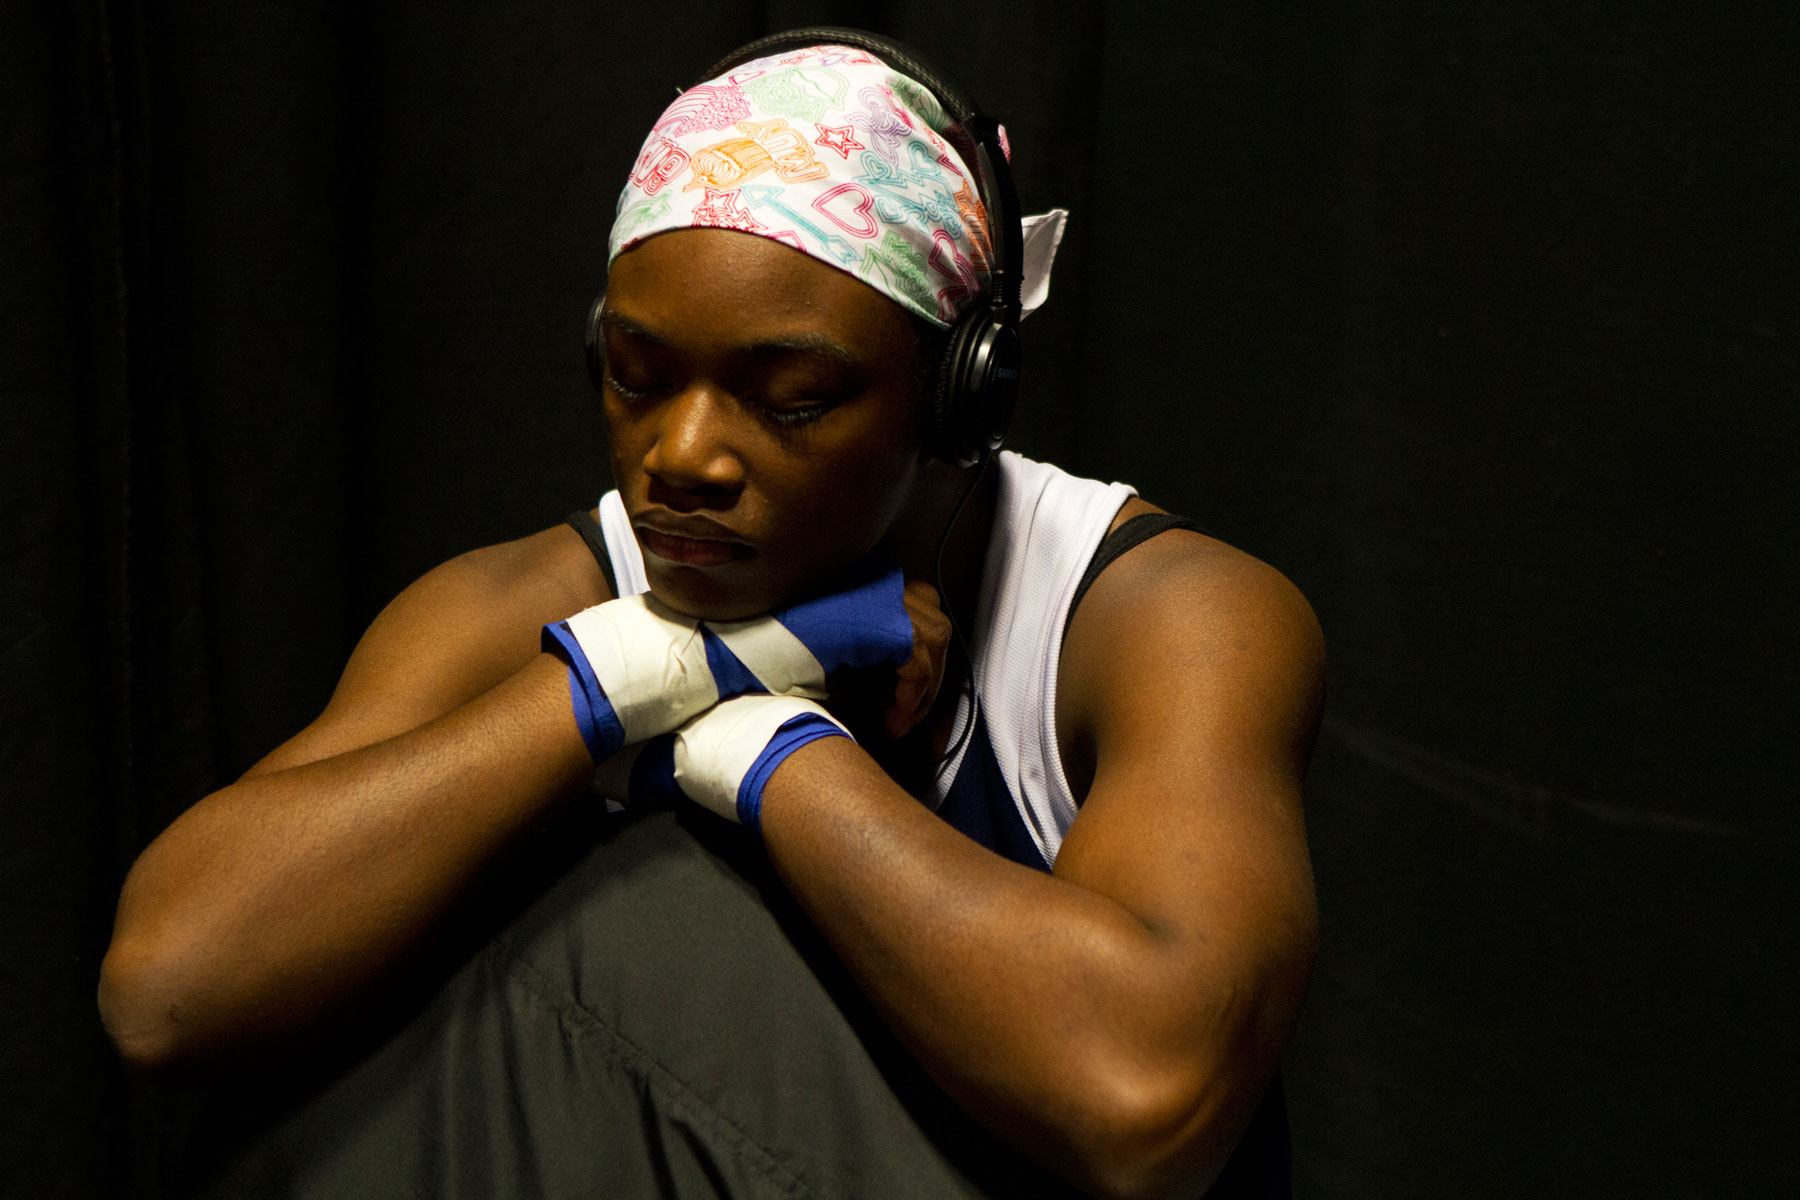 Claressa Shields deep in thought while listening to music with headphones